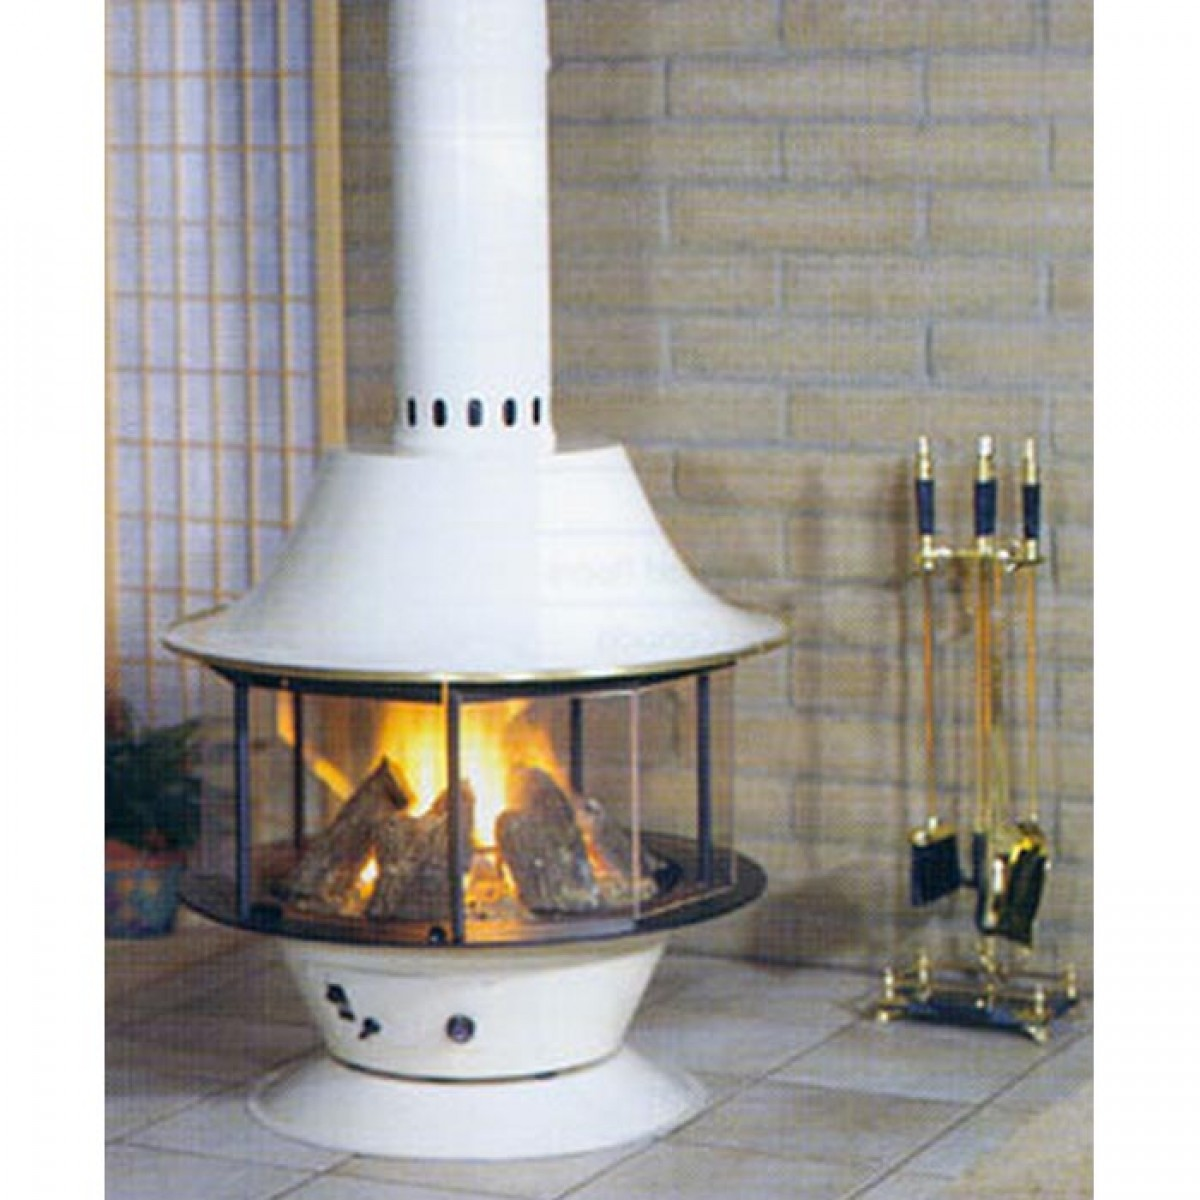 malm making yellow brick century conversion home over fireplaces our fireplace mcm mid